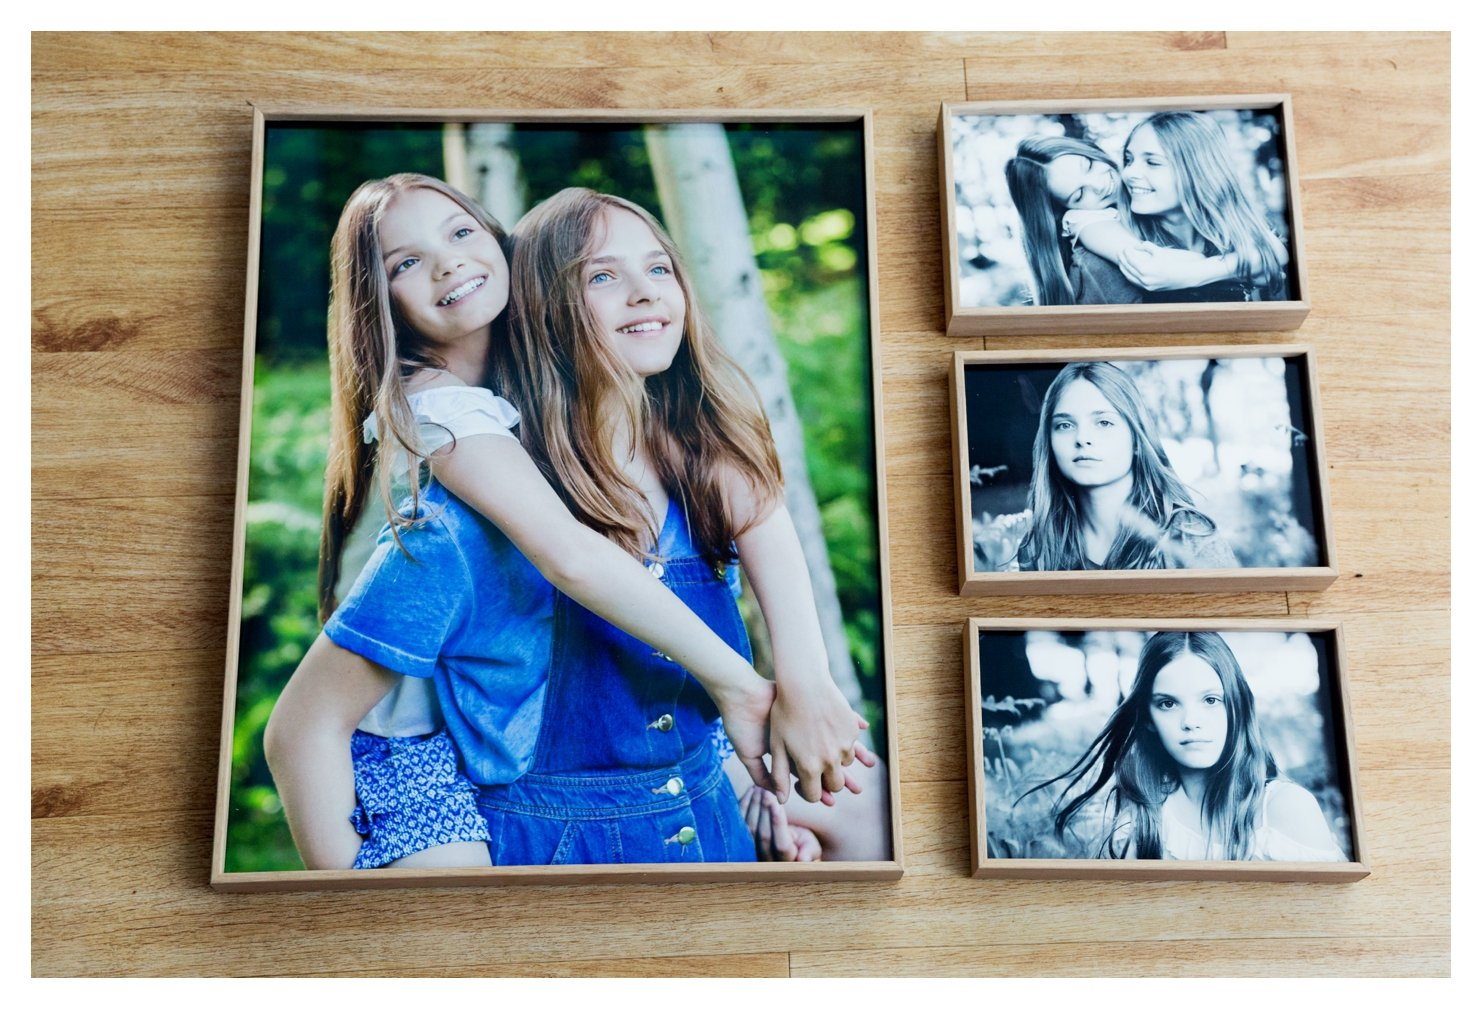 a frame with multiple images in it showing the story of the portraits in the park or lifestyle family photography session